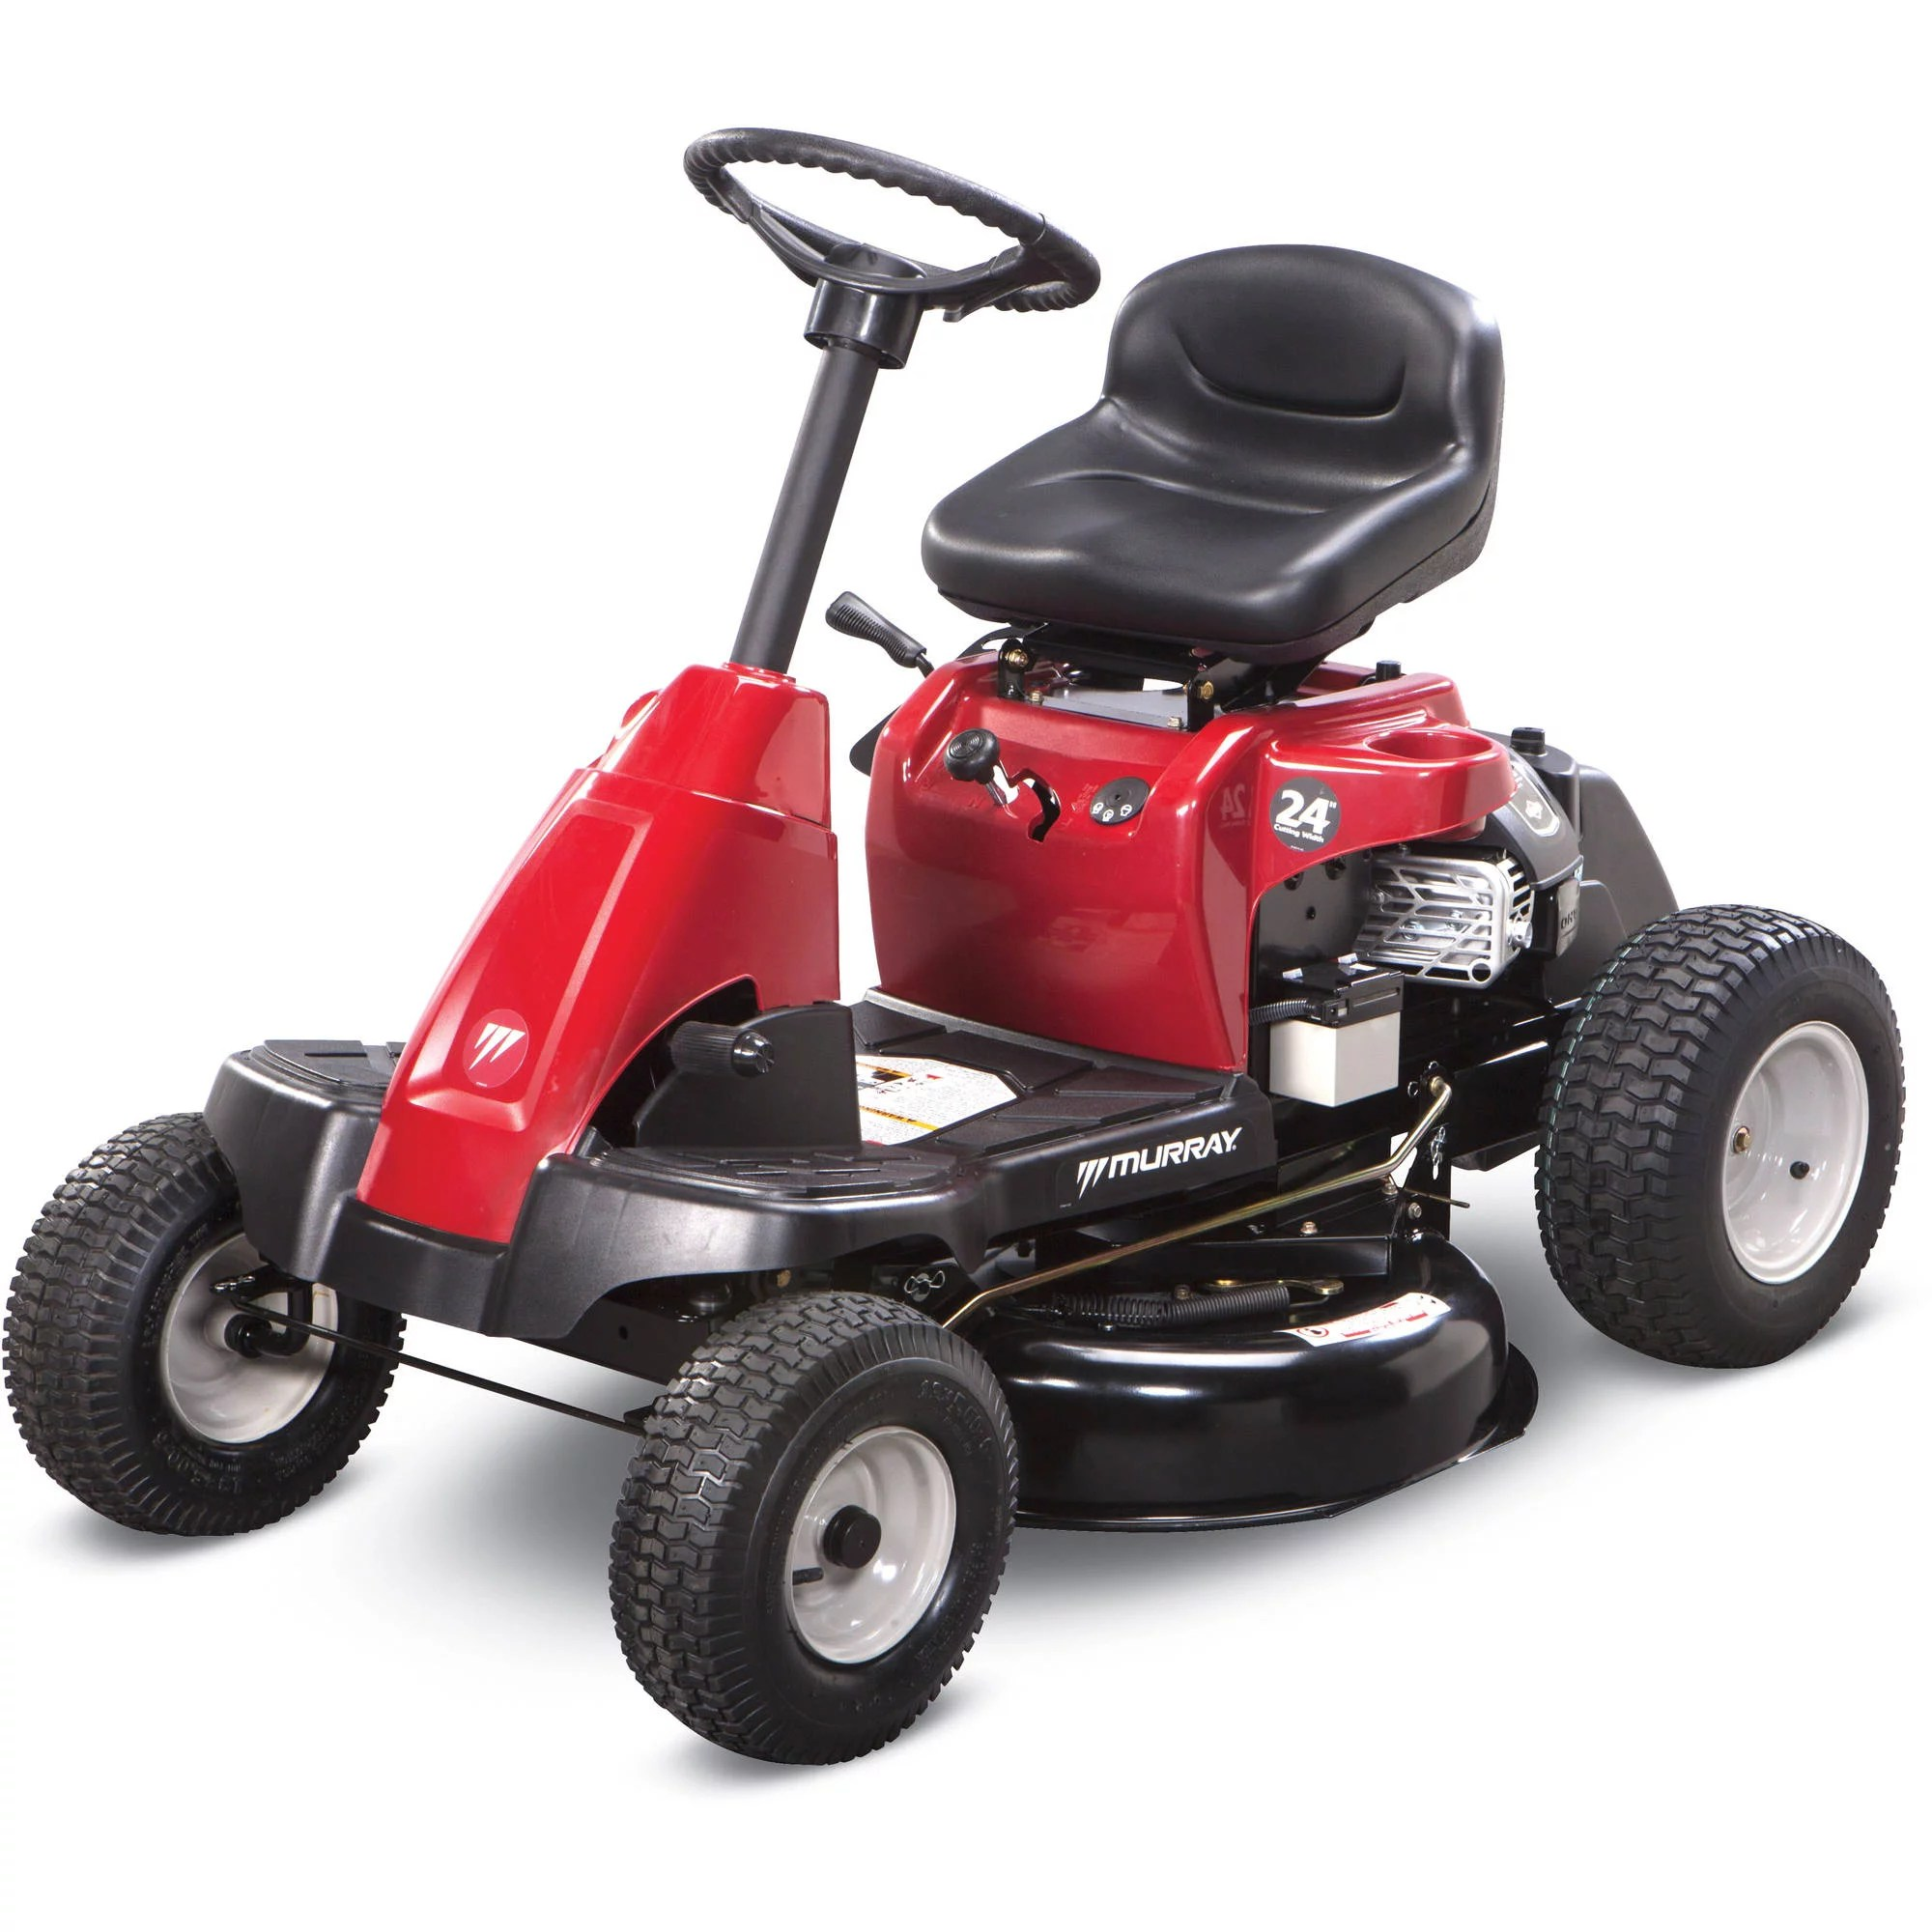 medium resolution of murray 24 rear engine riding mower with mulch kit walmart com murray rider wiring harness